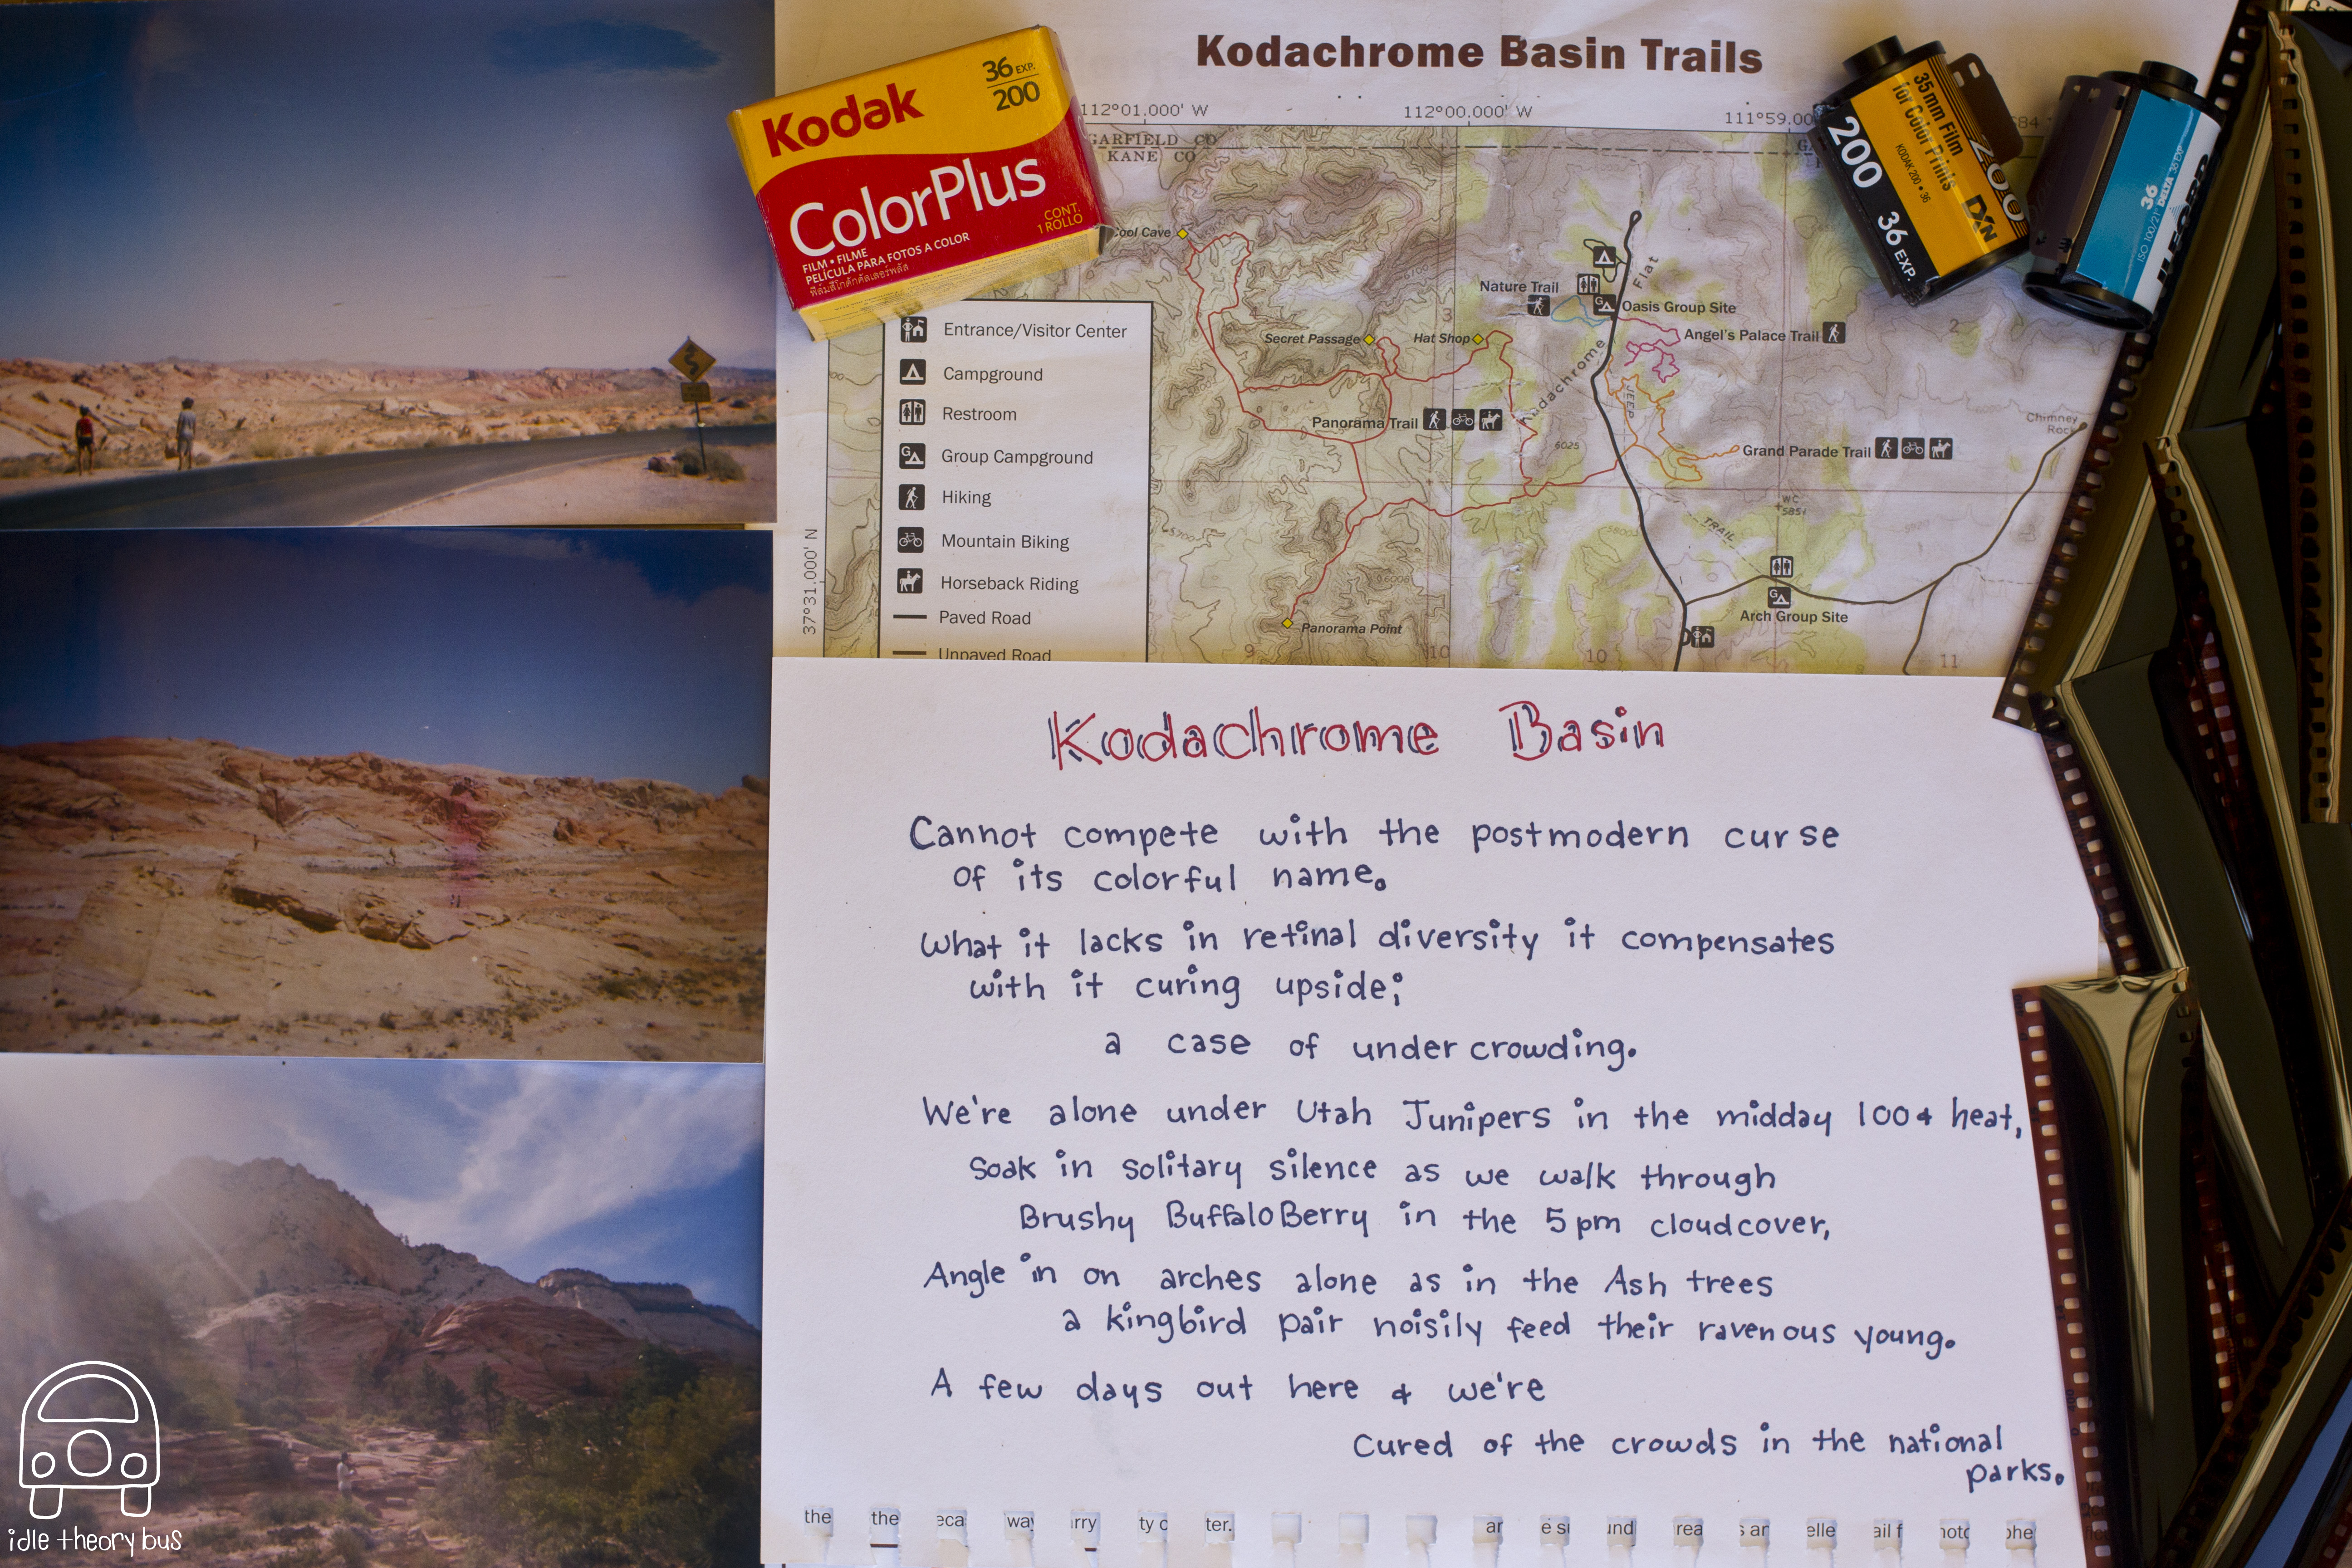 Kodachrome_Basin